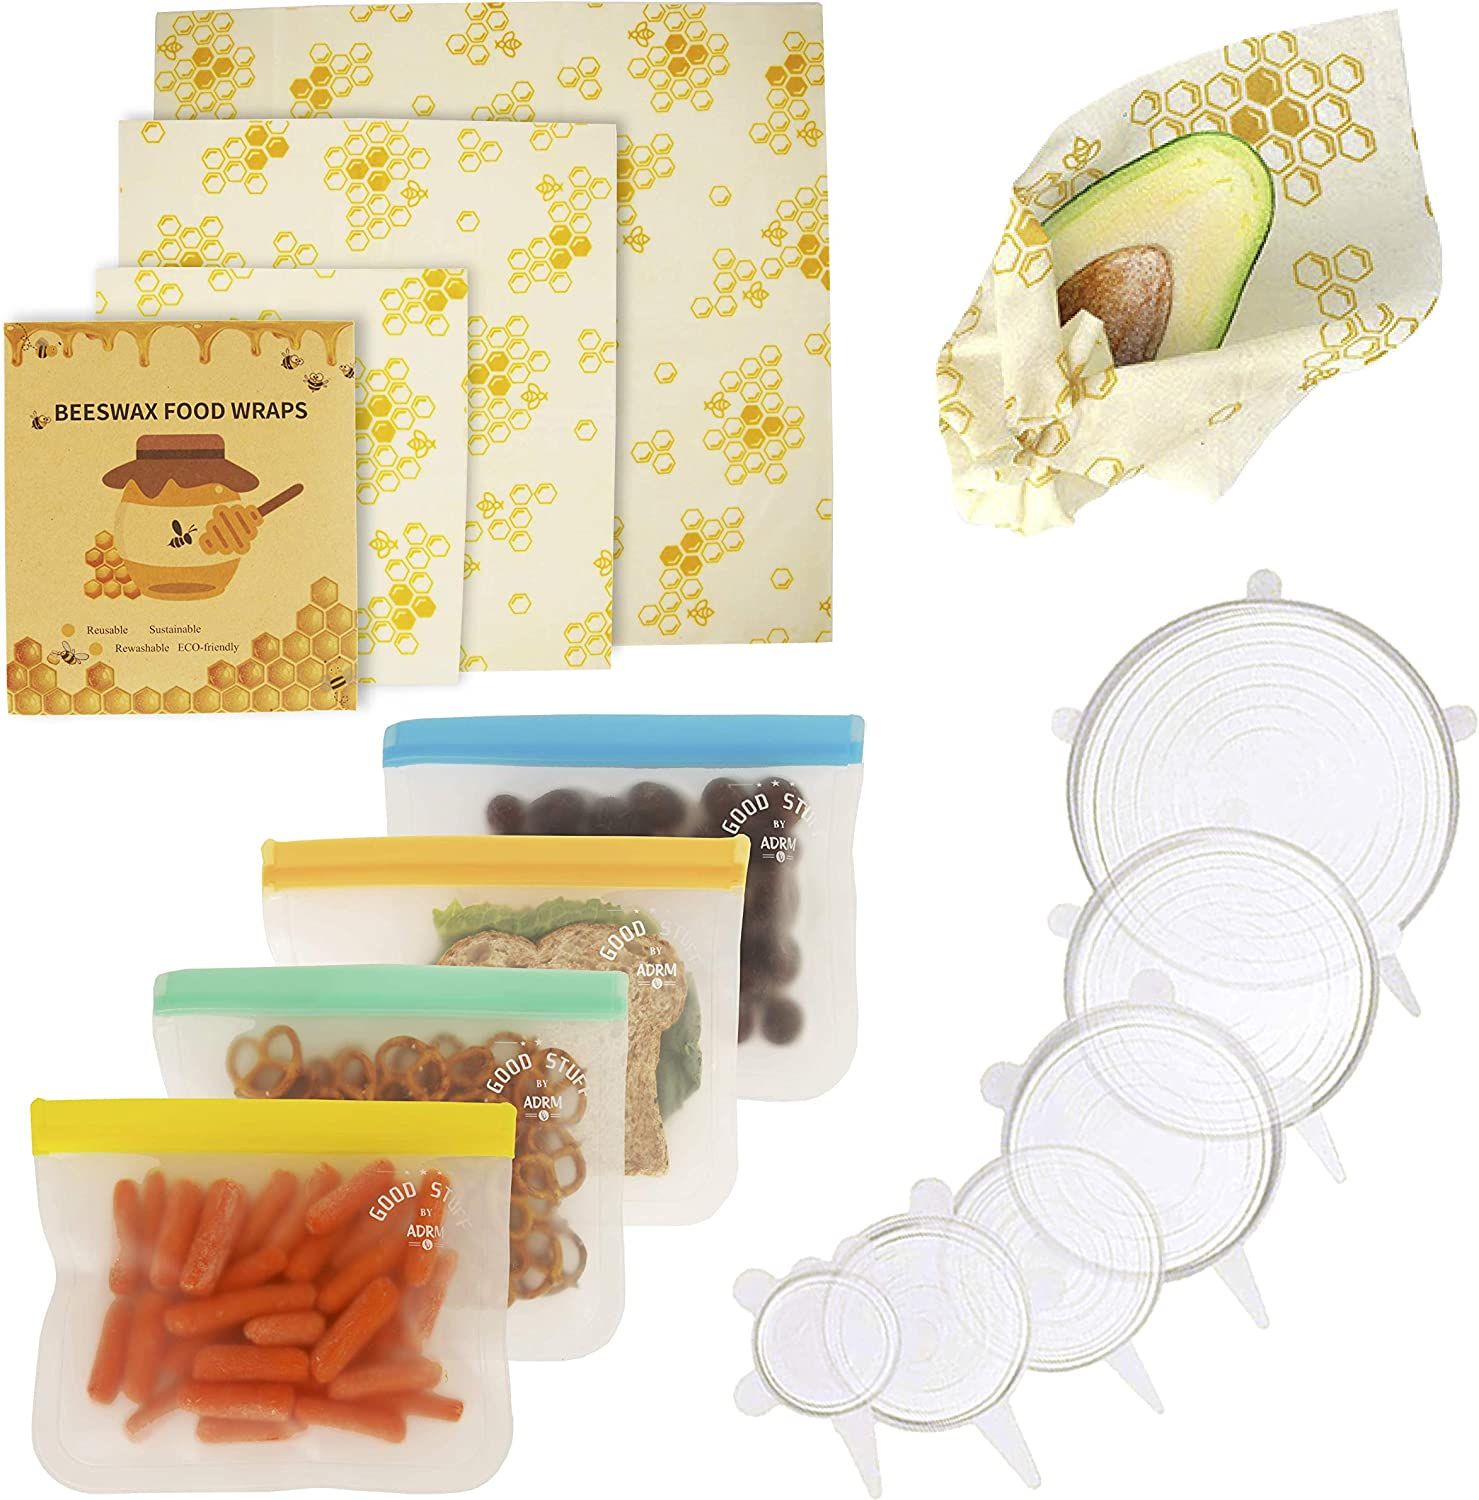 ADRM Good Stuff 3 Beeswax Wraps + 4 Reusable Food Storage Bags + 6 Stronger Silicone Stretch Lids = 1 Nature Friendly Kitchen (13 Pack)